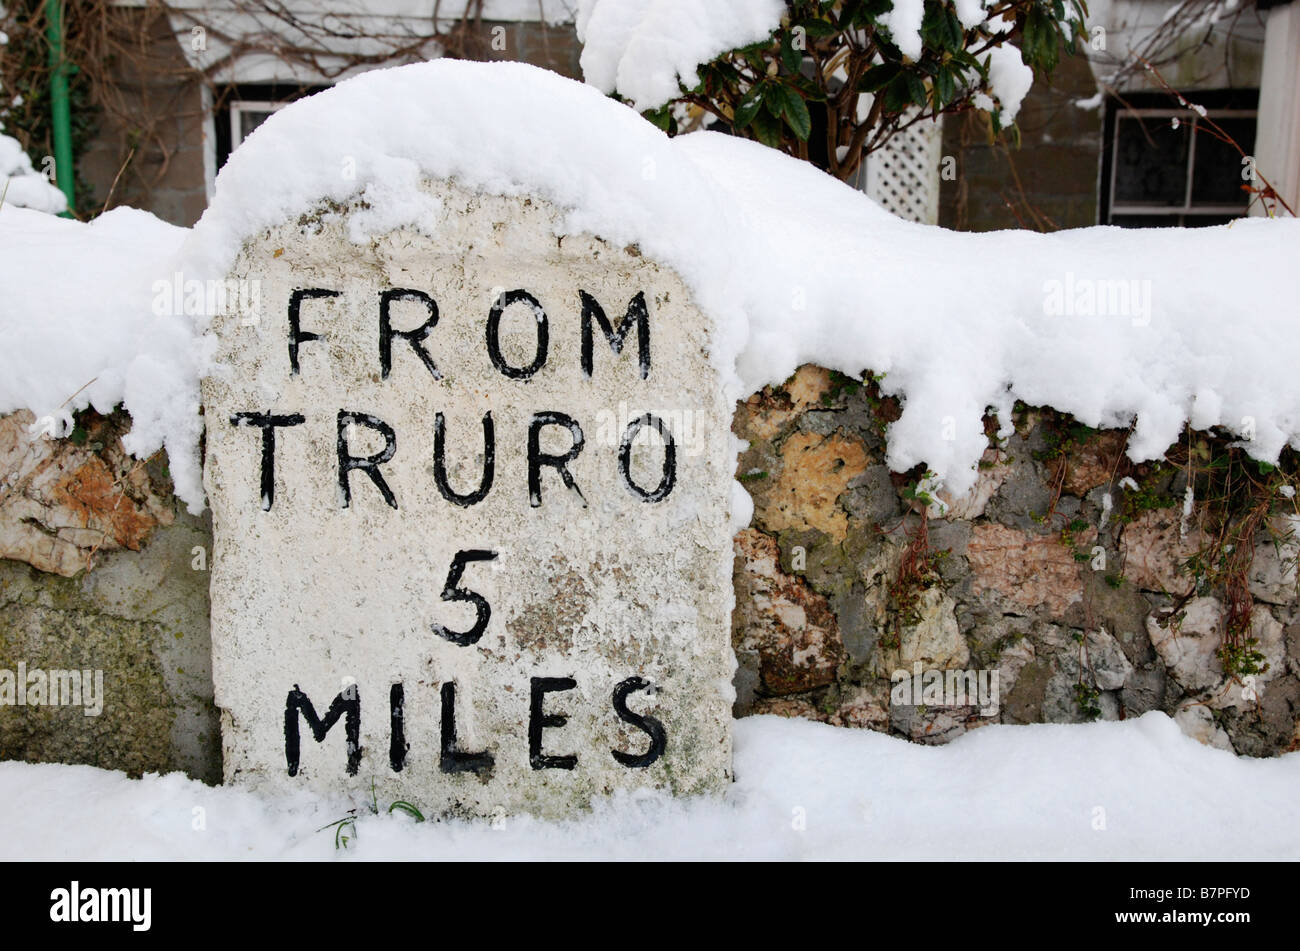 a snow covered milestone showing 5 miles to truro,cornwall,uk - Stock Image